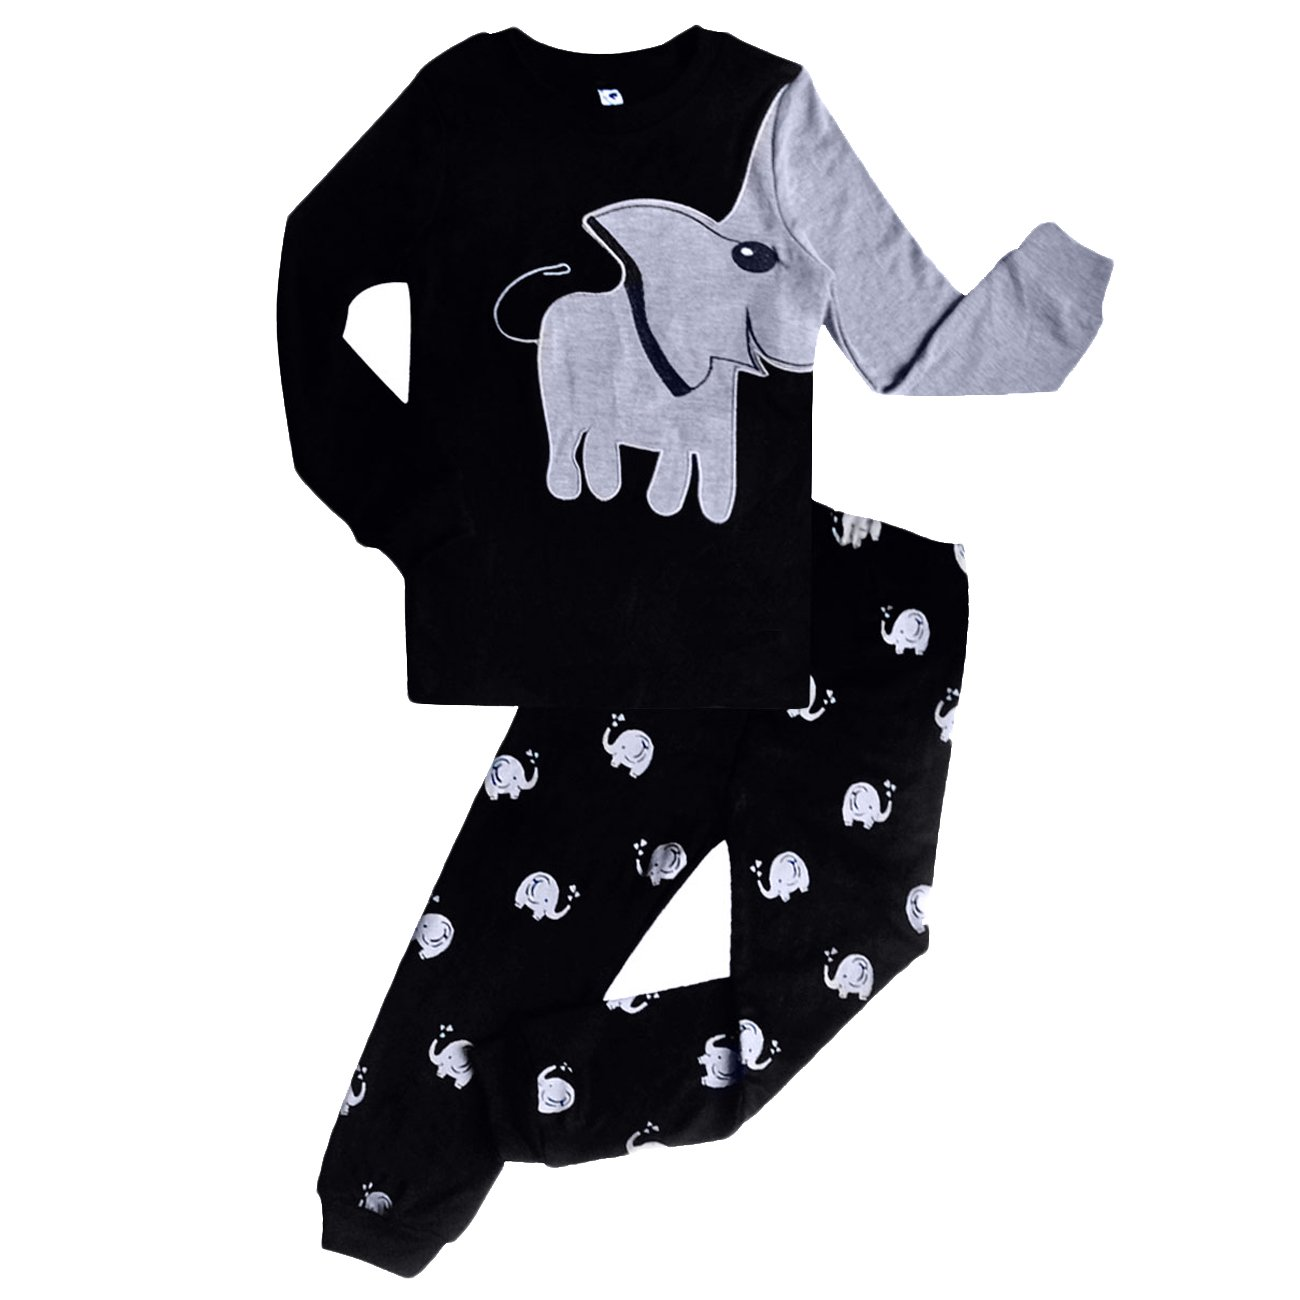 DDSOL Toddler Boys Thermal Underwear Essential Two-Piece Set